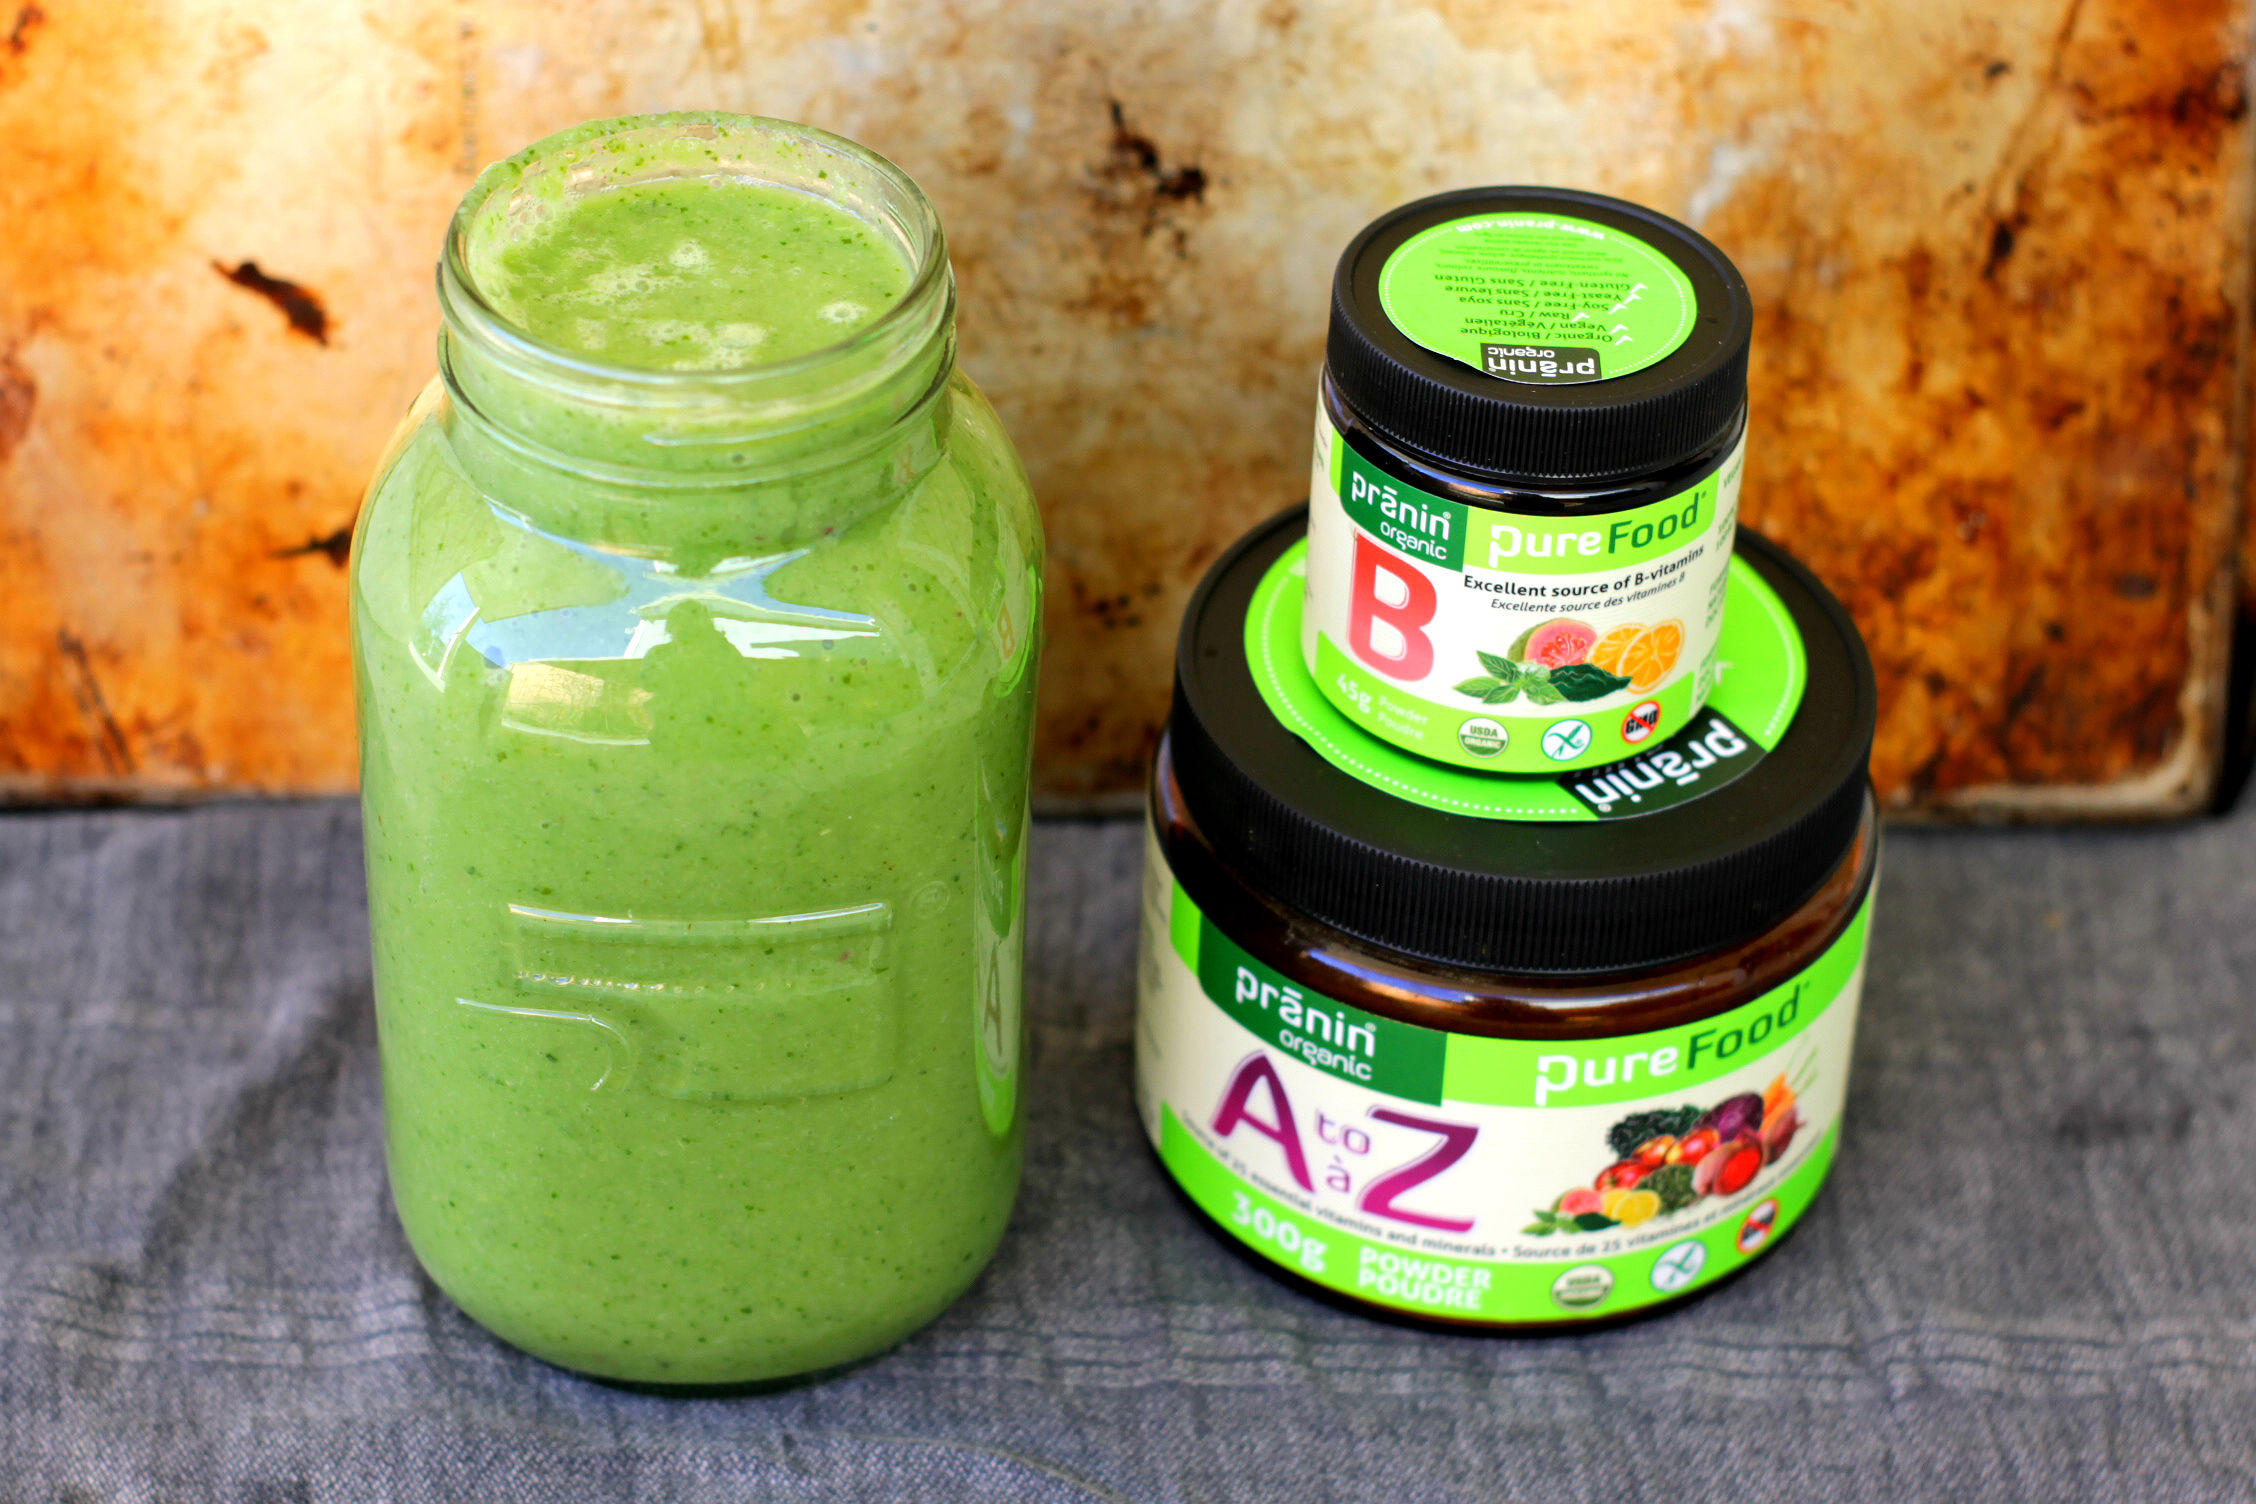 The Everyday Green Smoothie